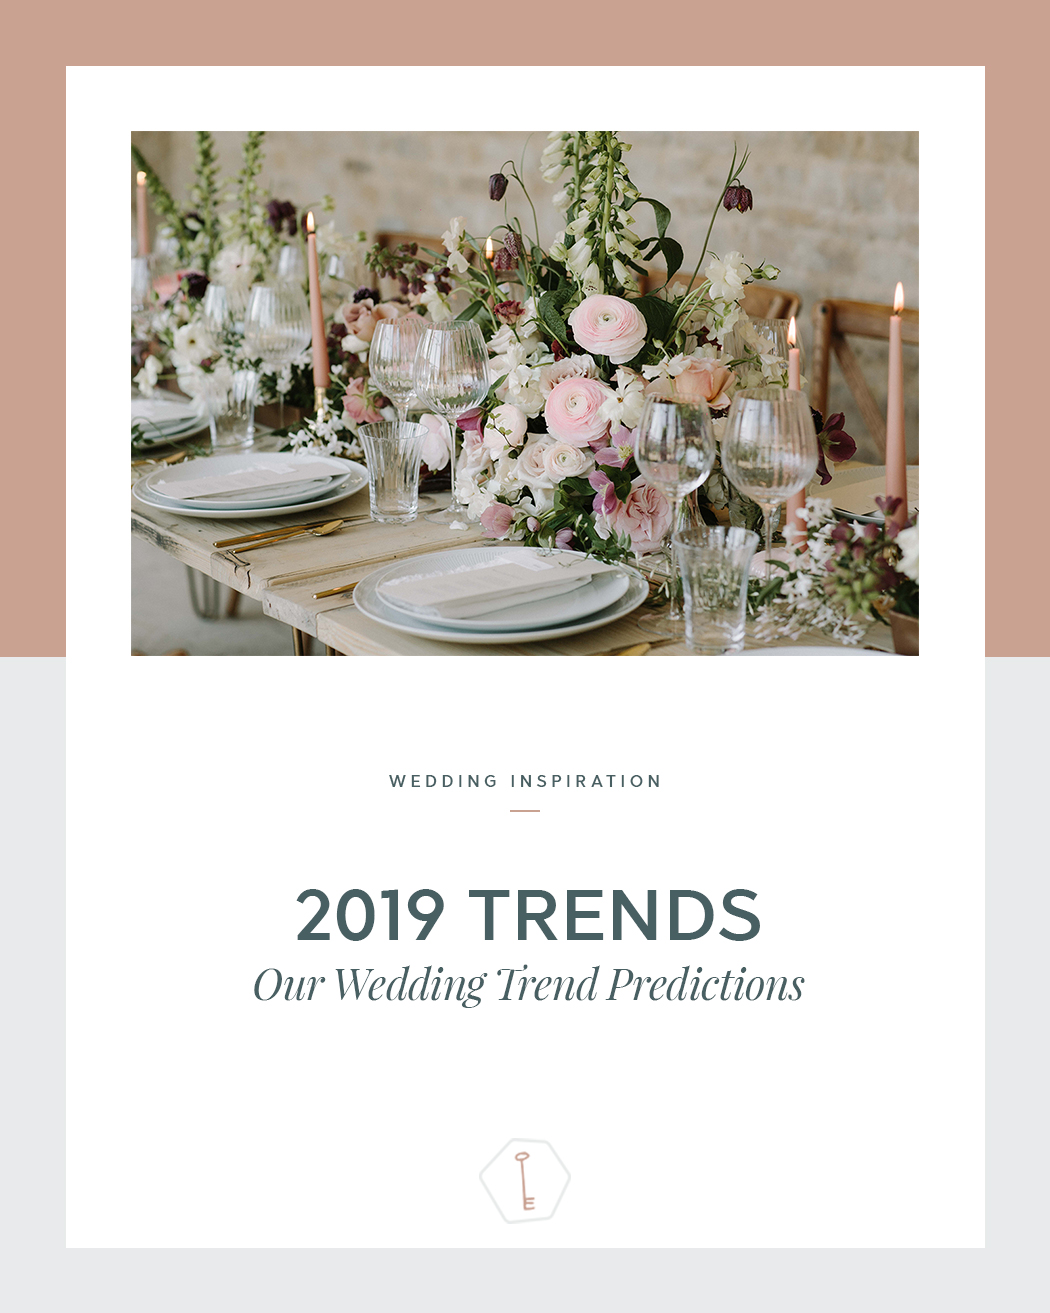 2019 Wedding Trends - Our Wedding Trend Predictions.